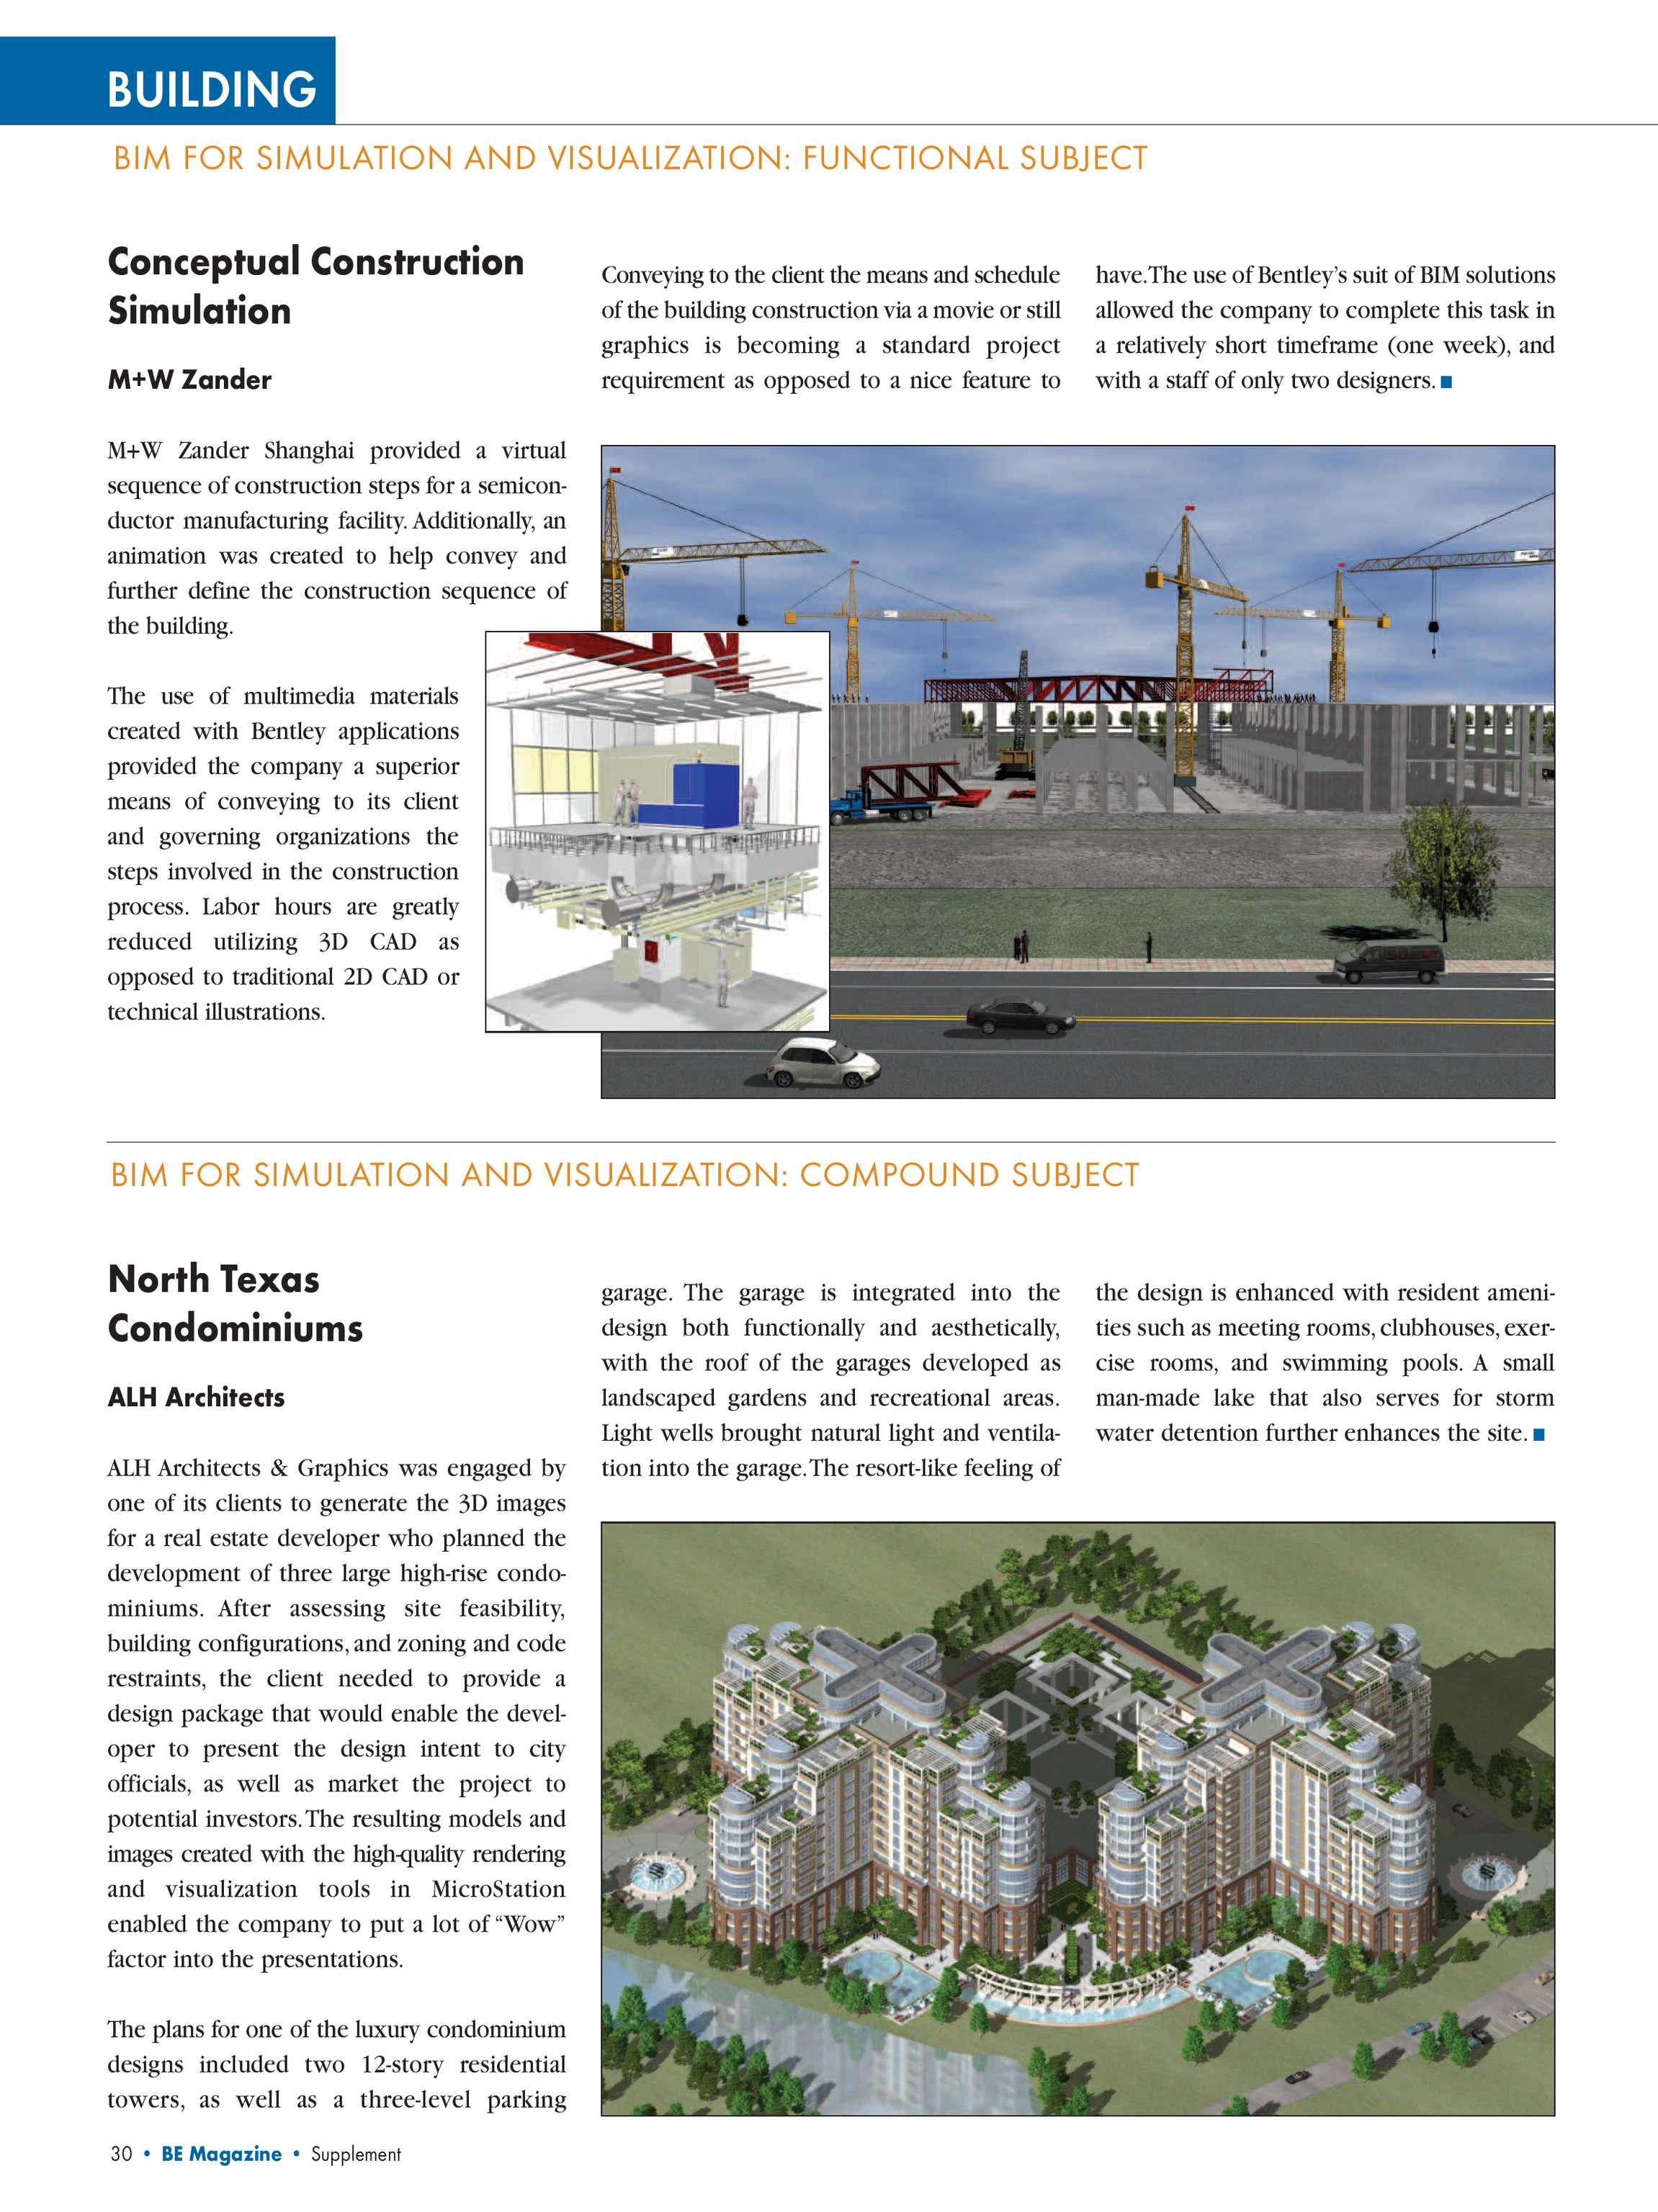 Year In Infrastructure 2005 - page 30